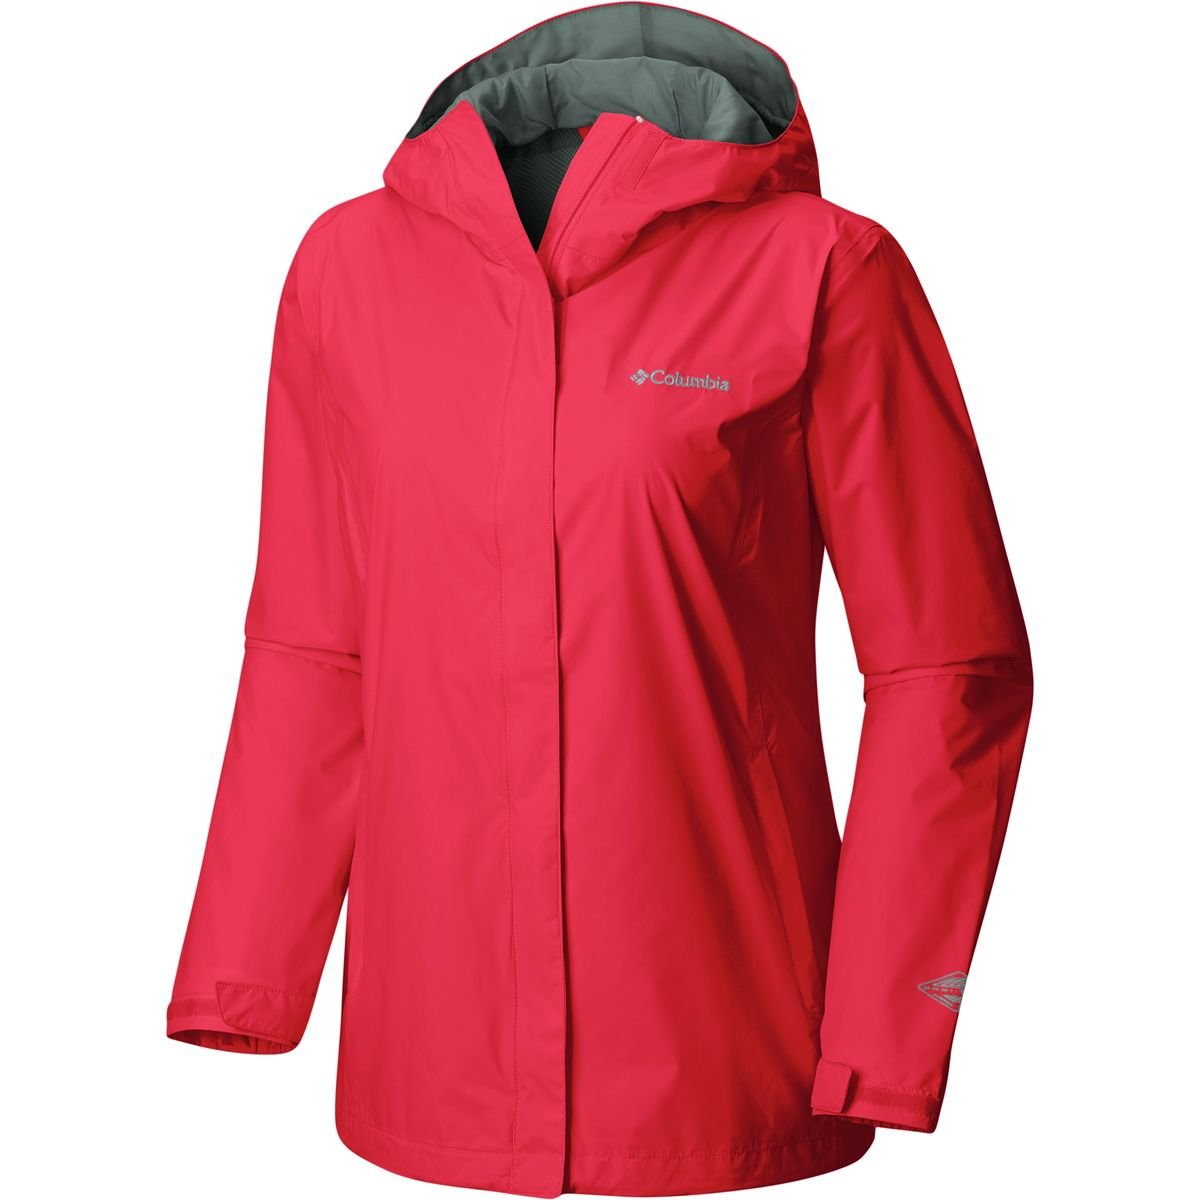 Columbia Women's Arcadia II Jacket, Red Camellia, XS